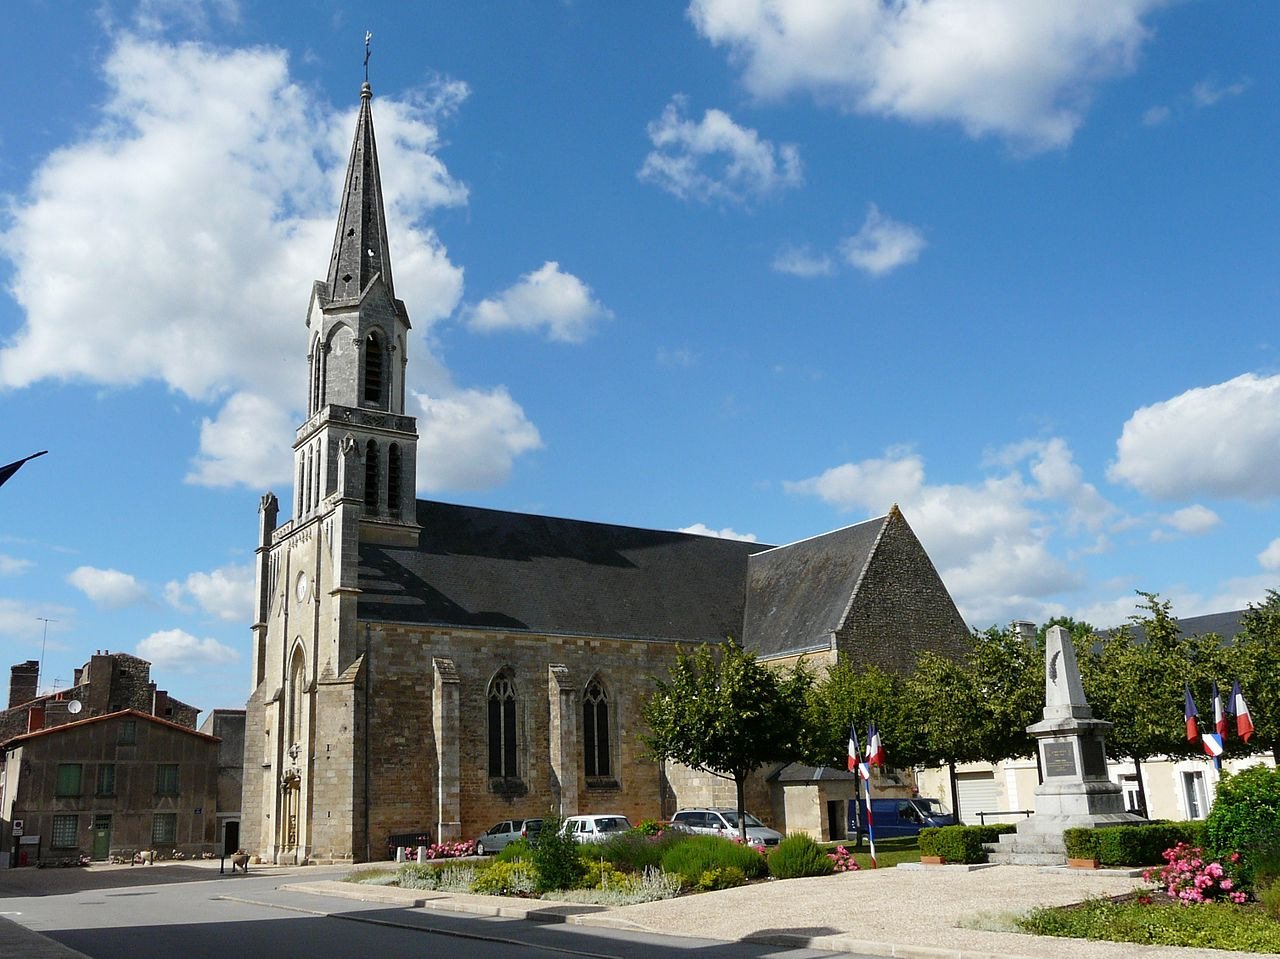 The Church of Notre Dame de l'Assomption